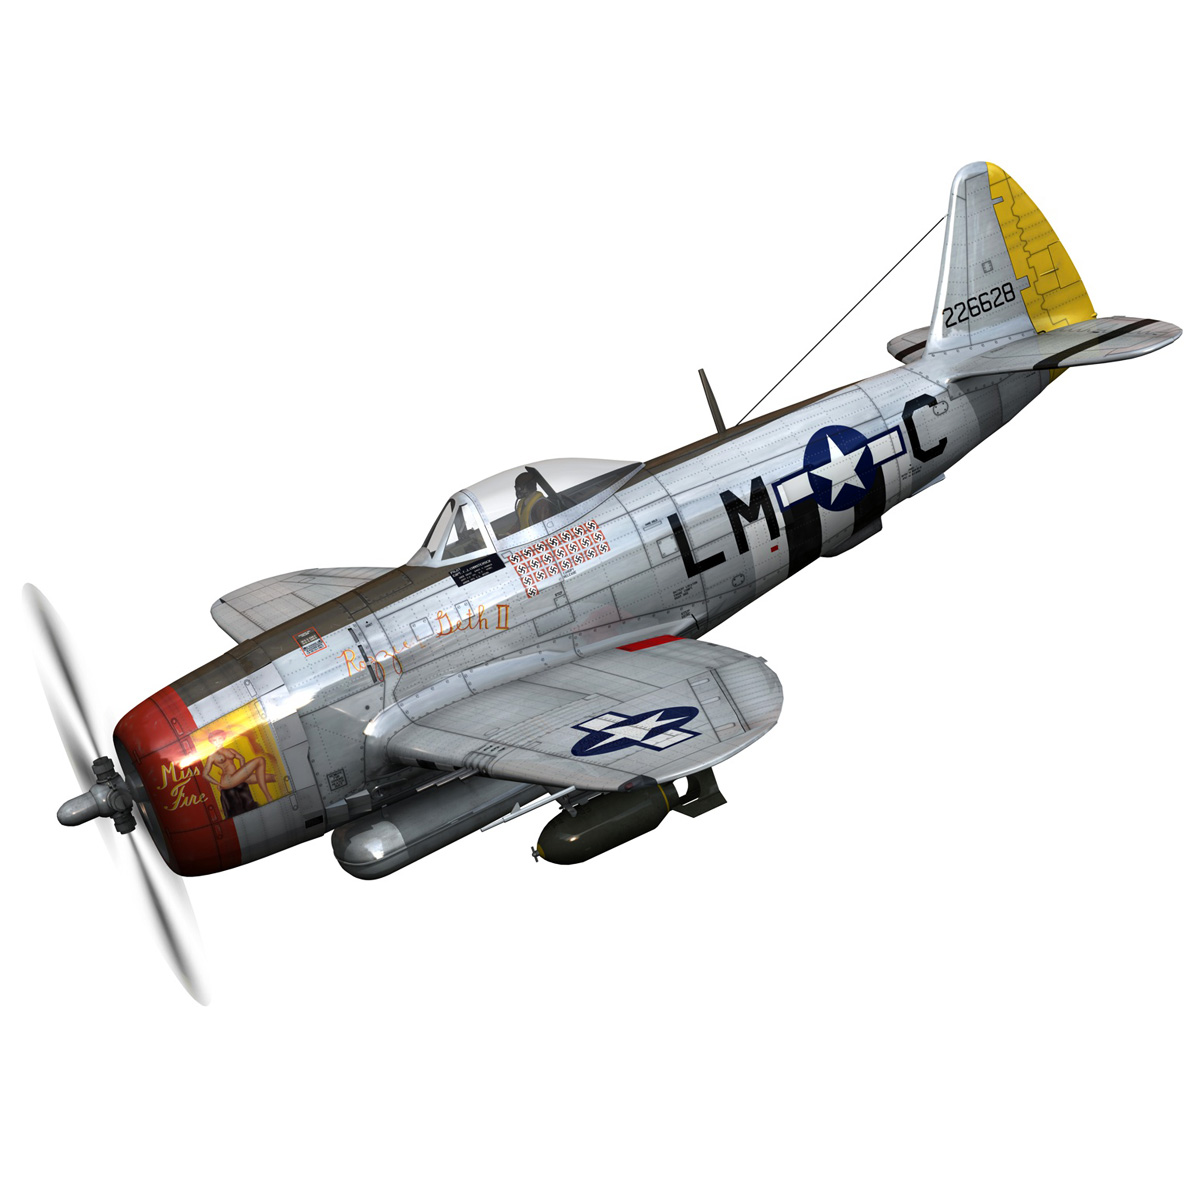 Republic P-47D Thunderbolt - Rozzie Geth II 3d model  279769